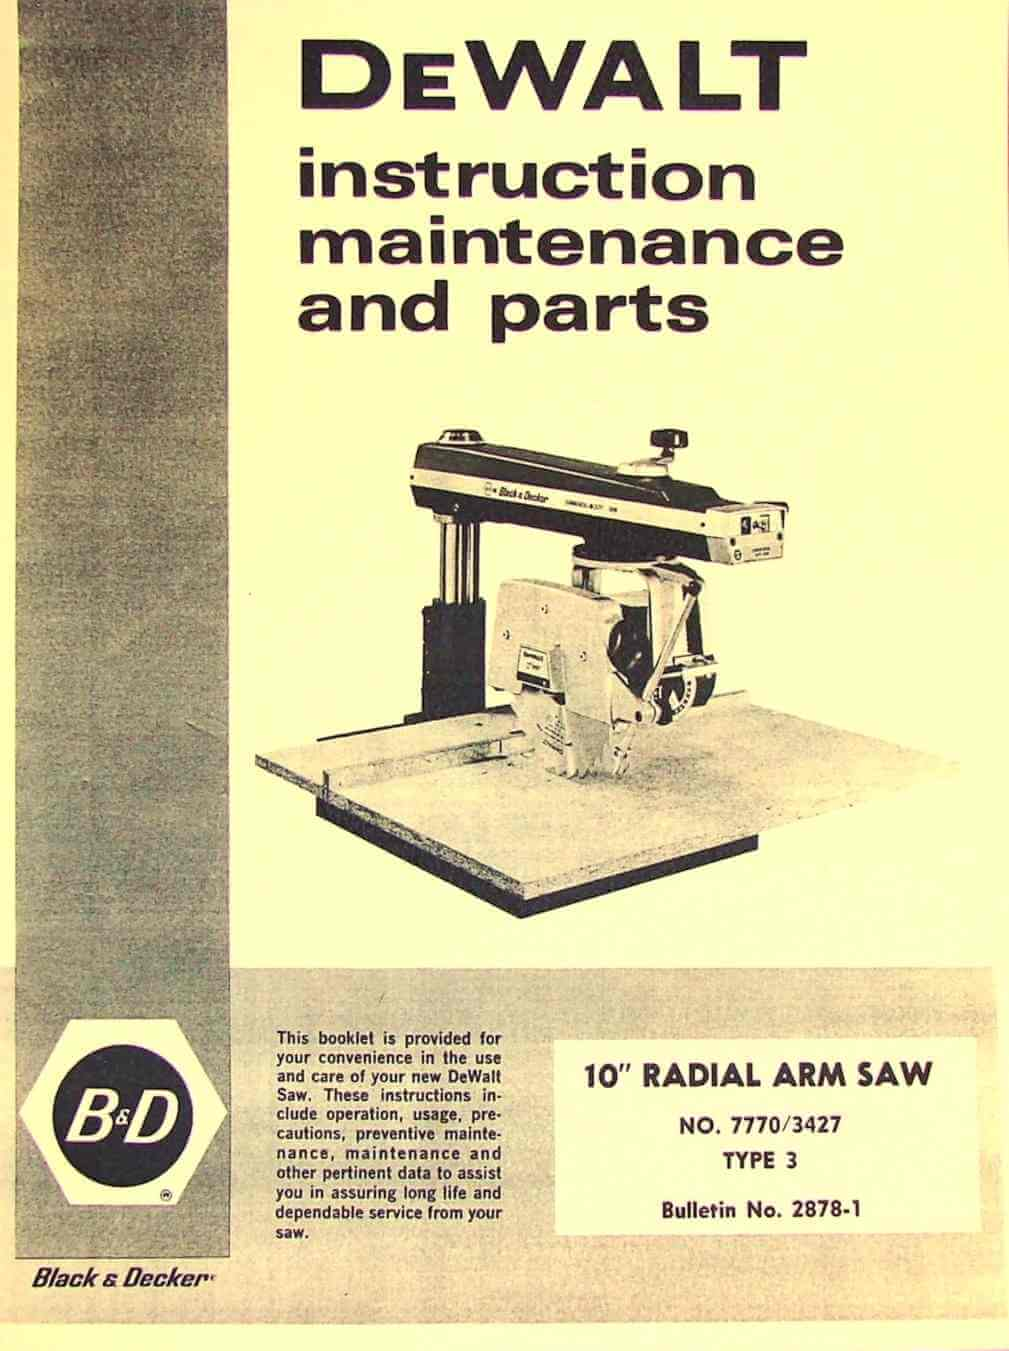 dewalt 7770 10-inch radial arm saw owner's instructions and parts manual